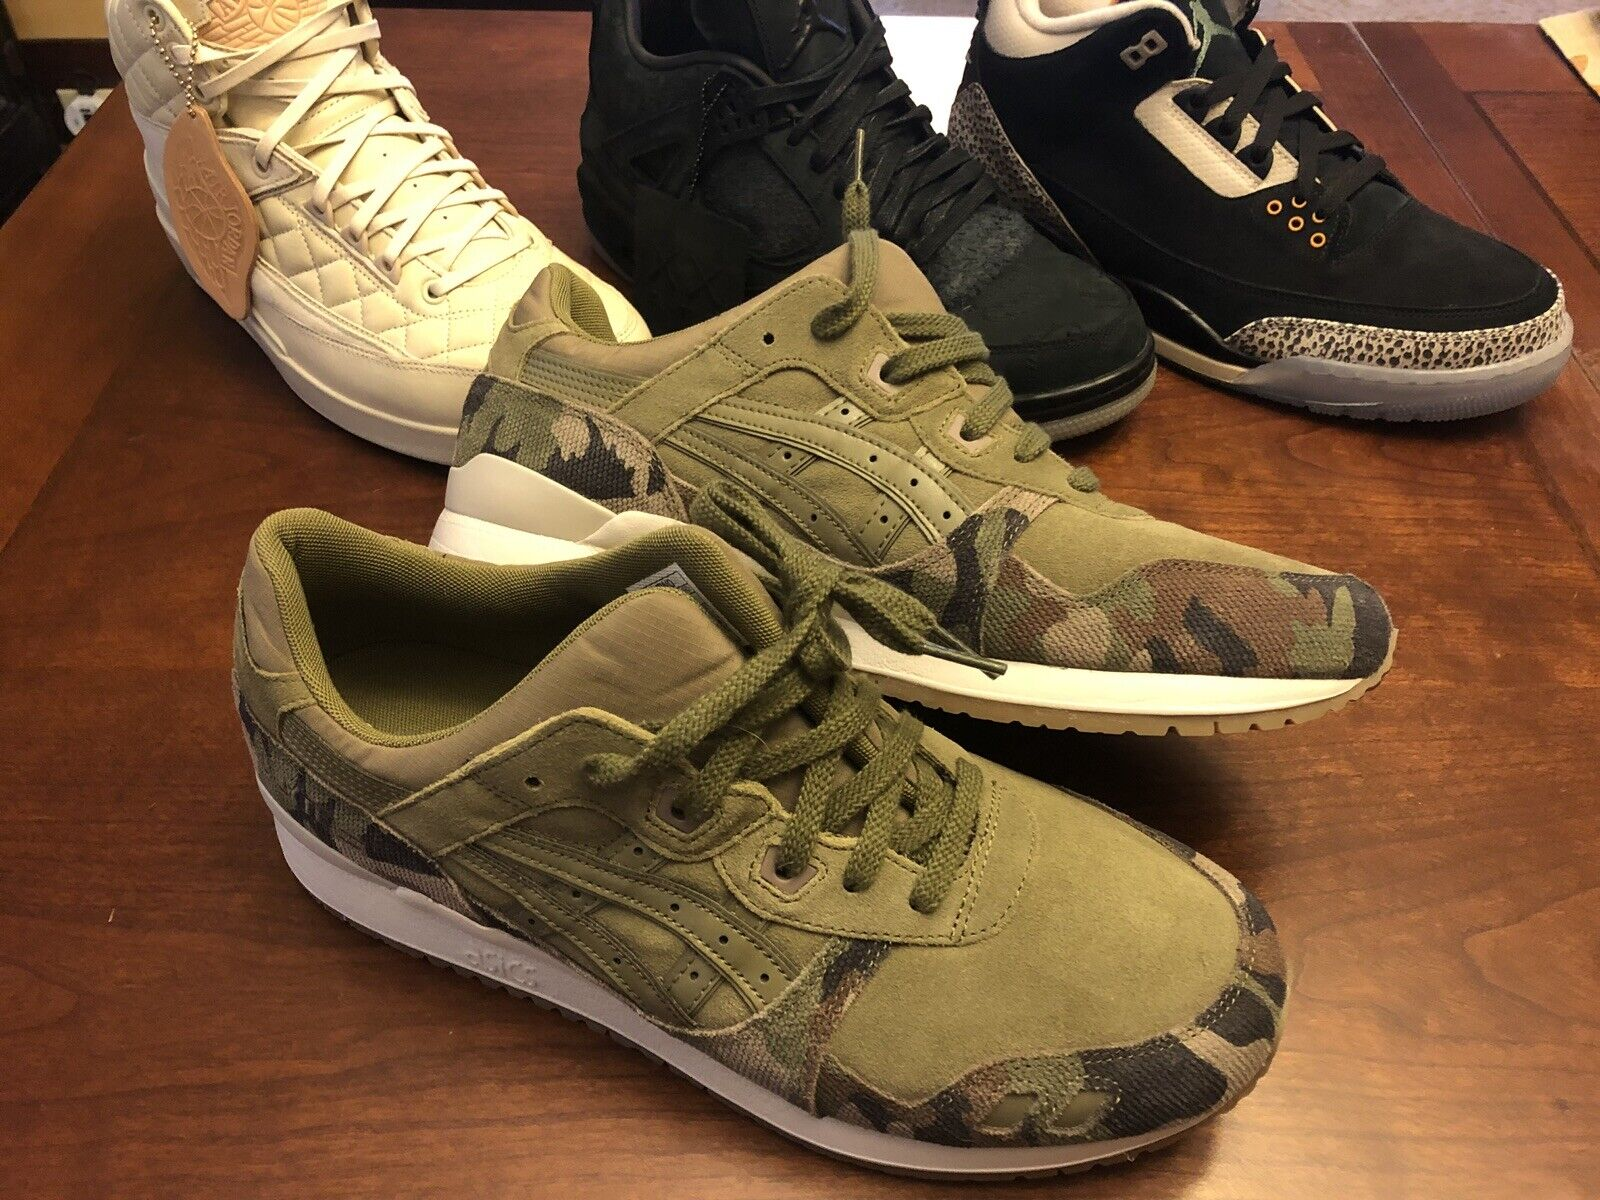 Asics Gel Lyte III 3 Martini Olive Green Sneakers Men New shoes HL7W0-8686 Sz 11